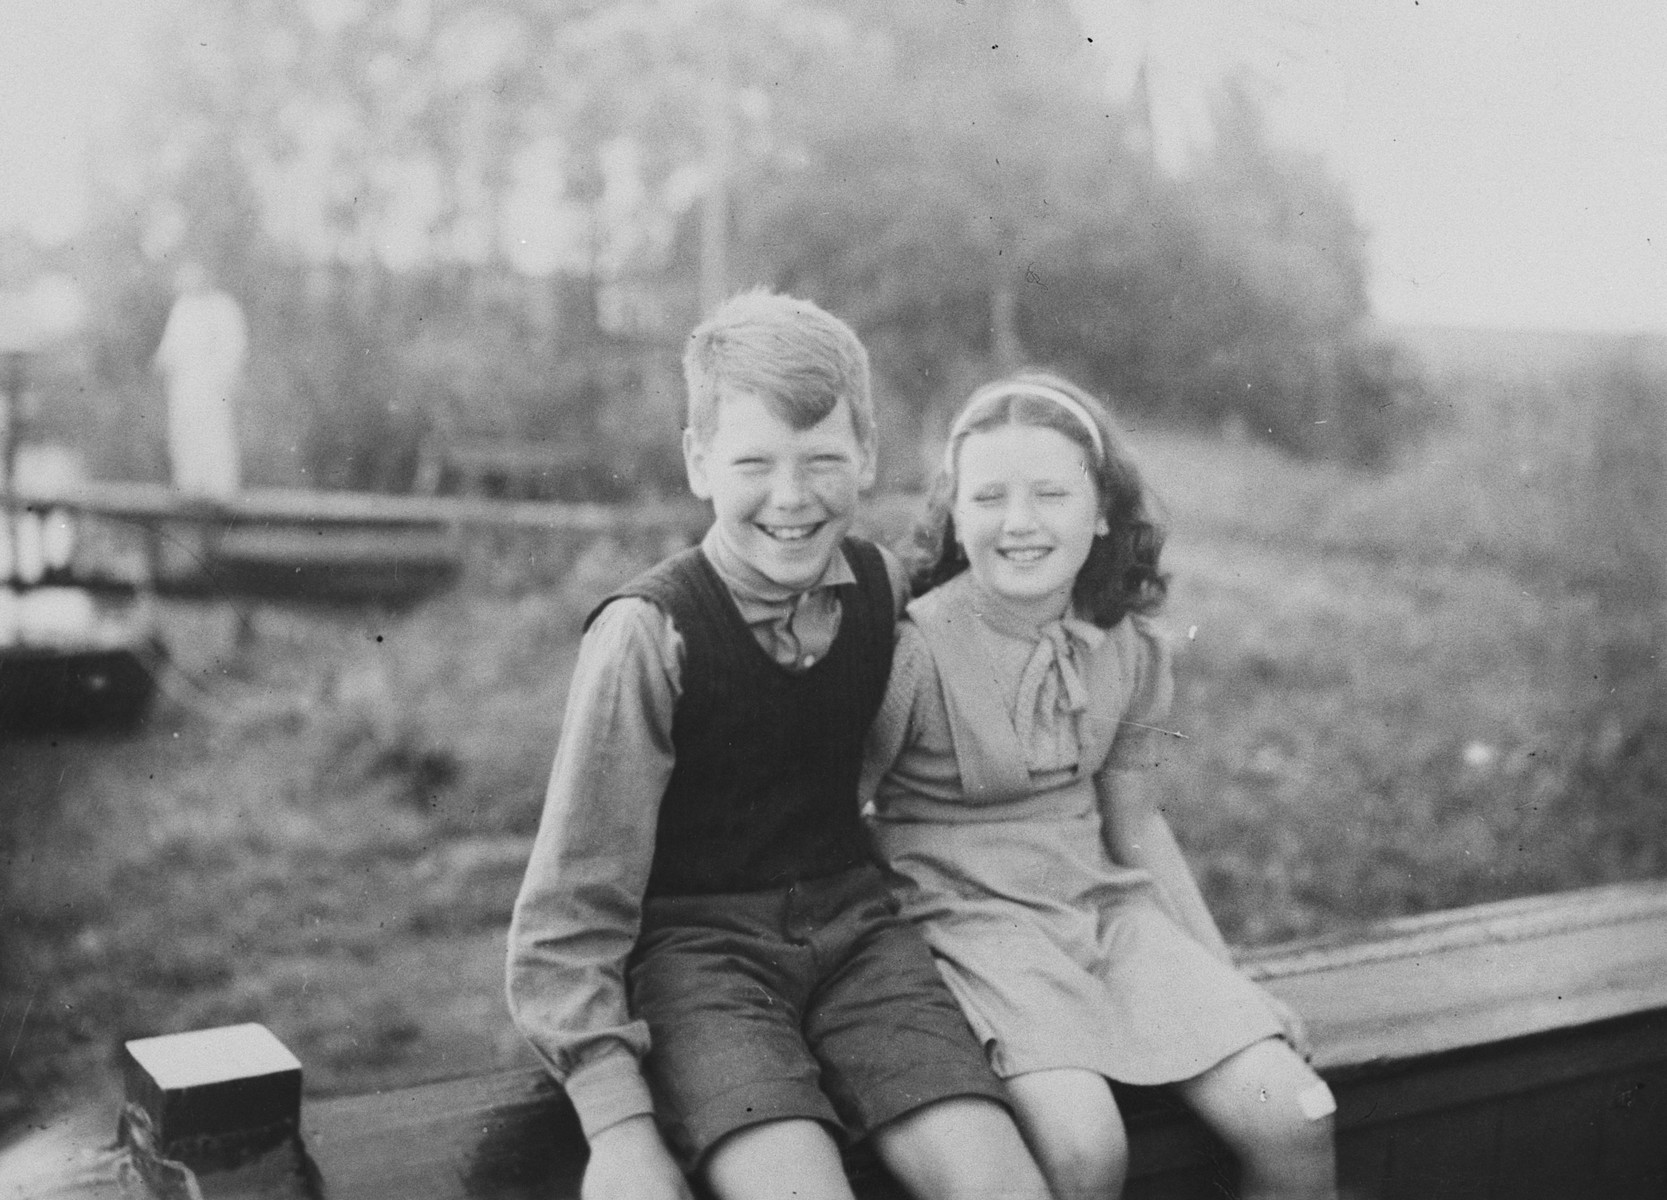 Max and Miep van Engel vacation in Friesland where they went to sail with their father a few years after the end of the war.  The siblings had survived the war in hiding.